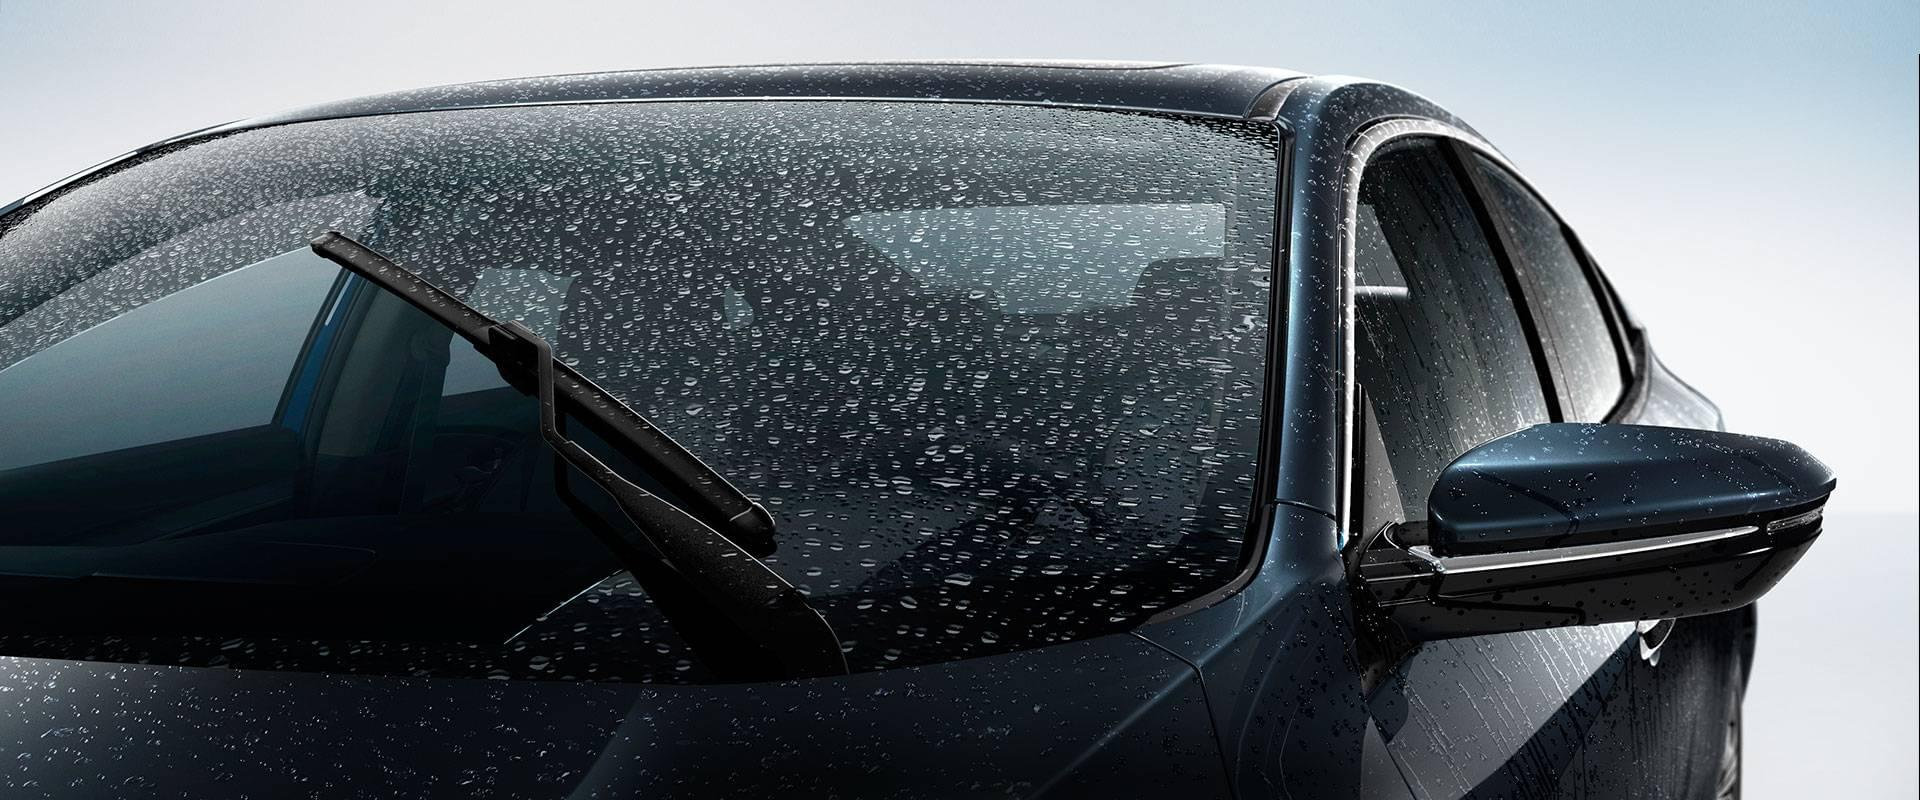 How To Change Windshield Wipers With These Simple Steps